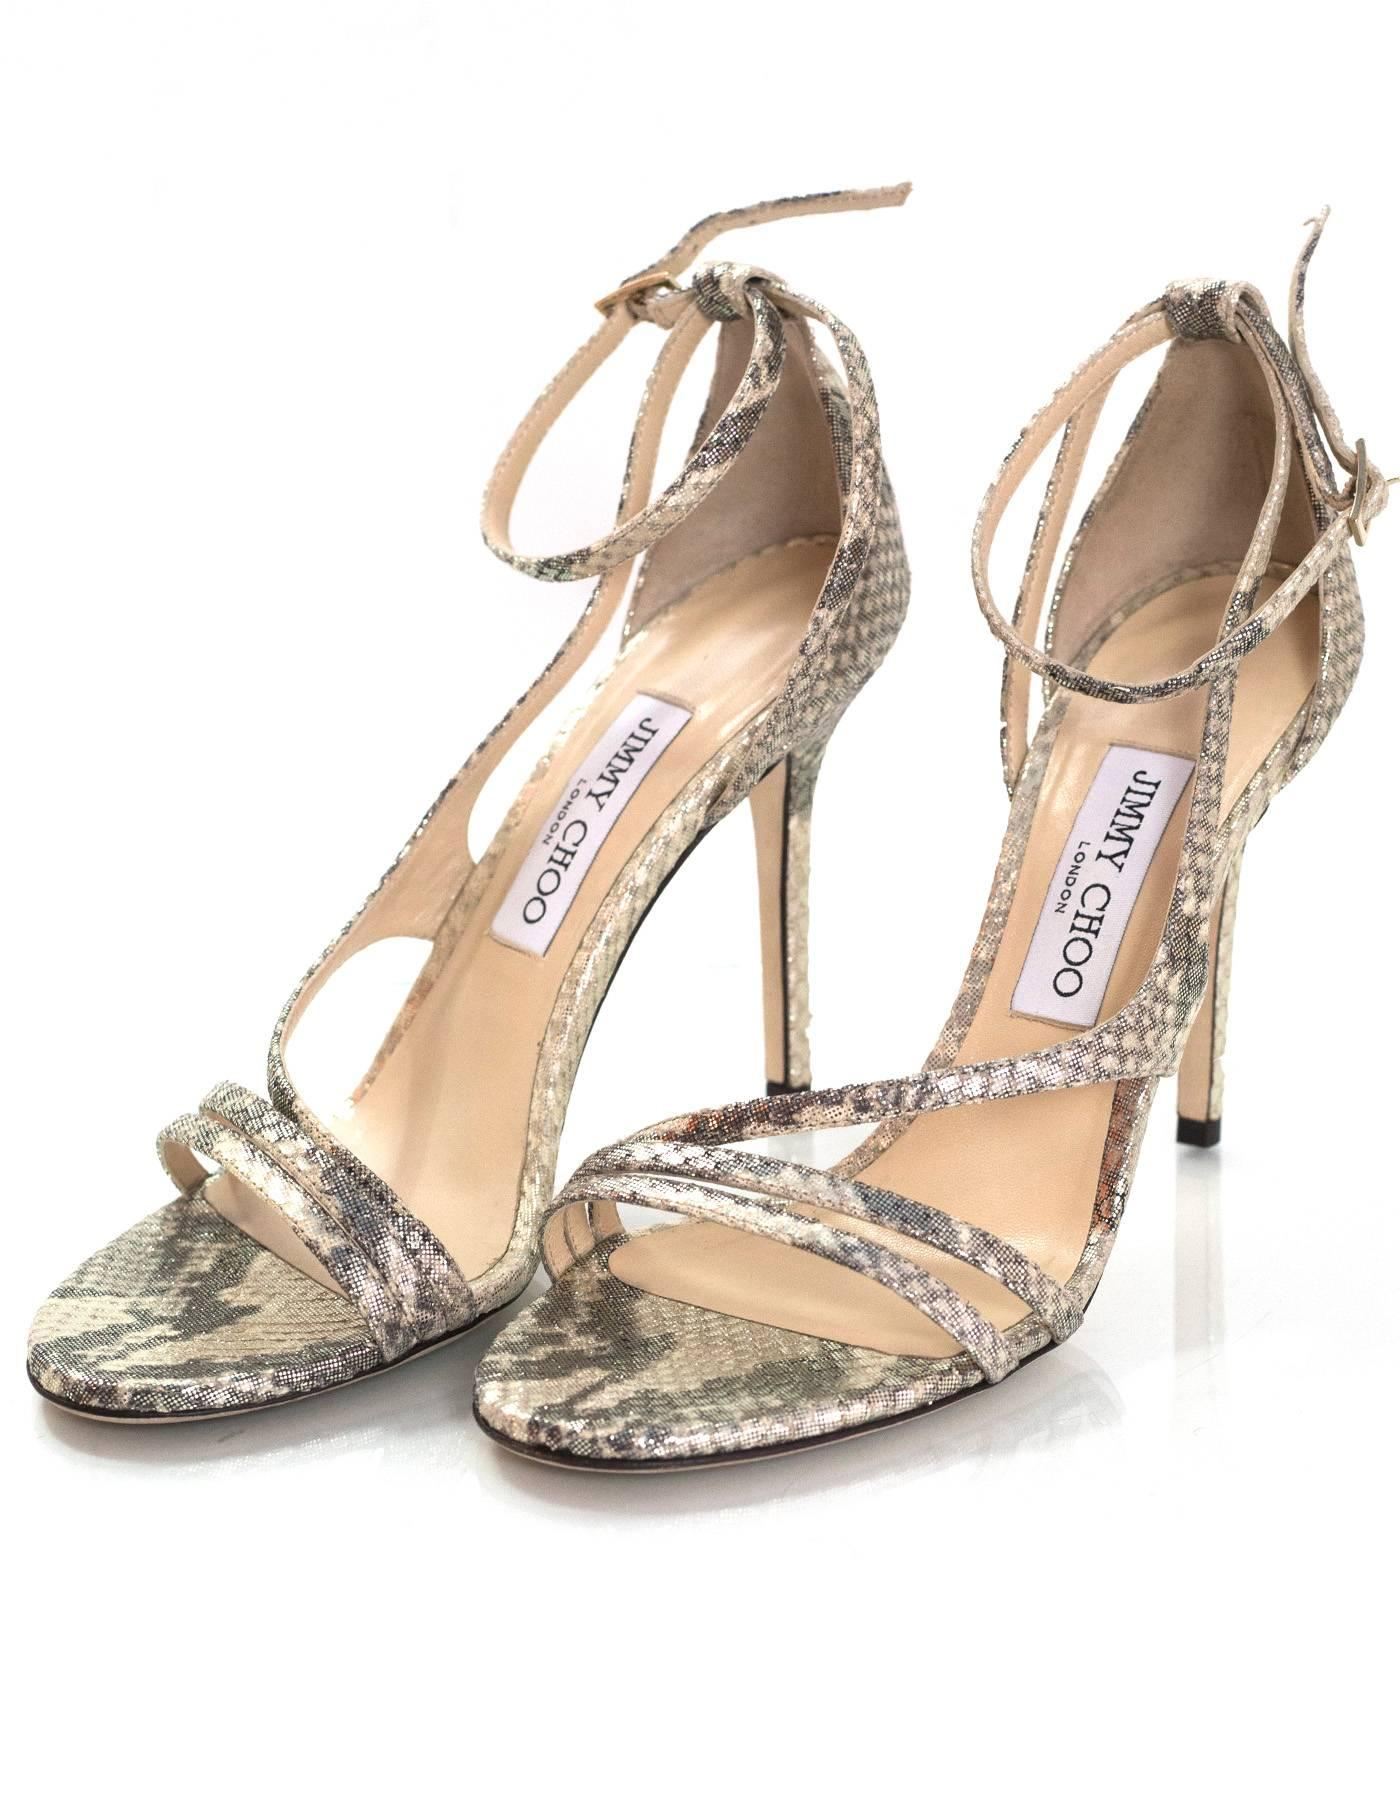 Pre-owned - Patent leather sandals Jimmy Choo London jUgJL